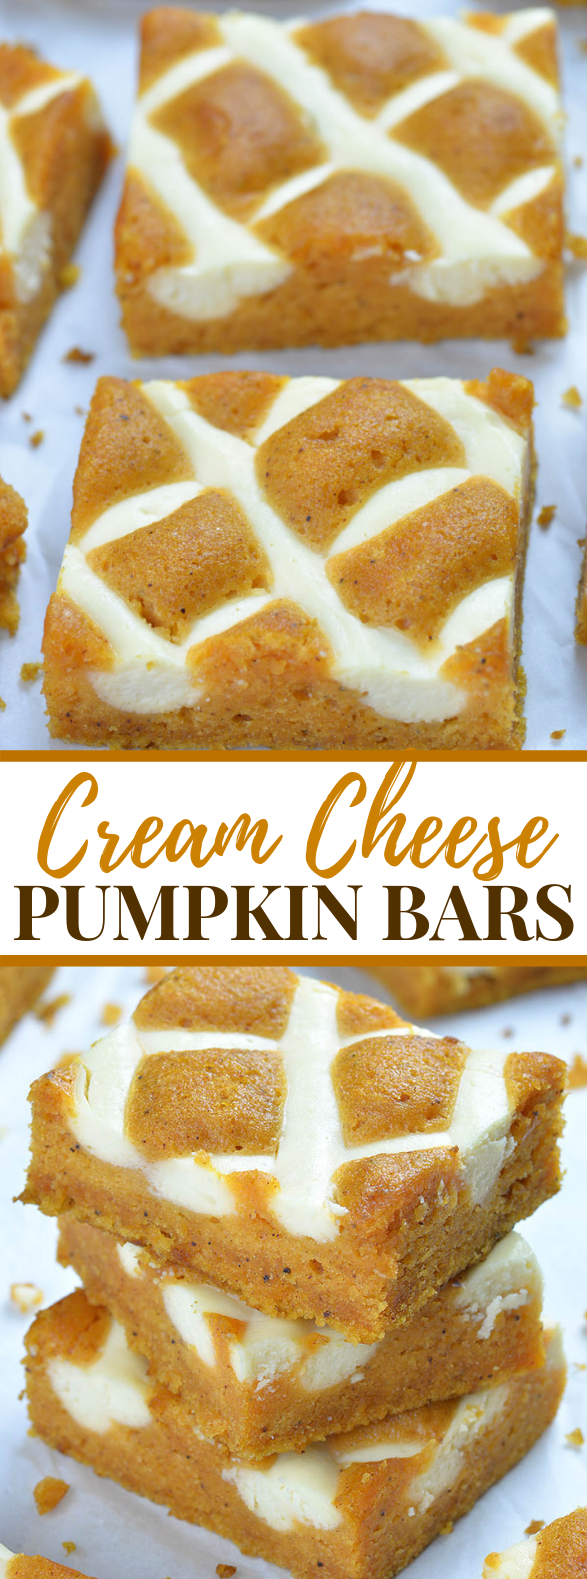 Pumpkin Bars with Cream Cheese #desserts #breakfast